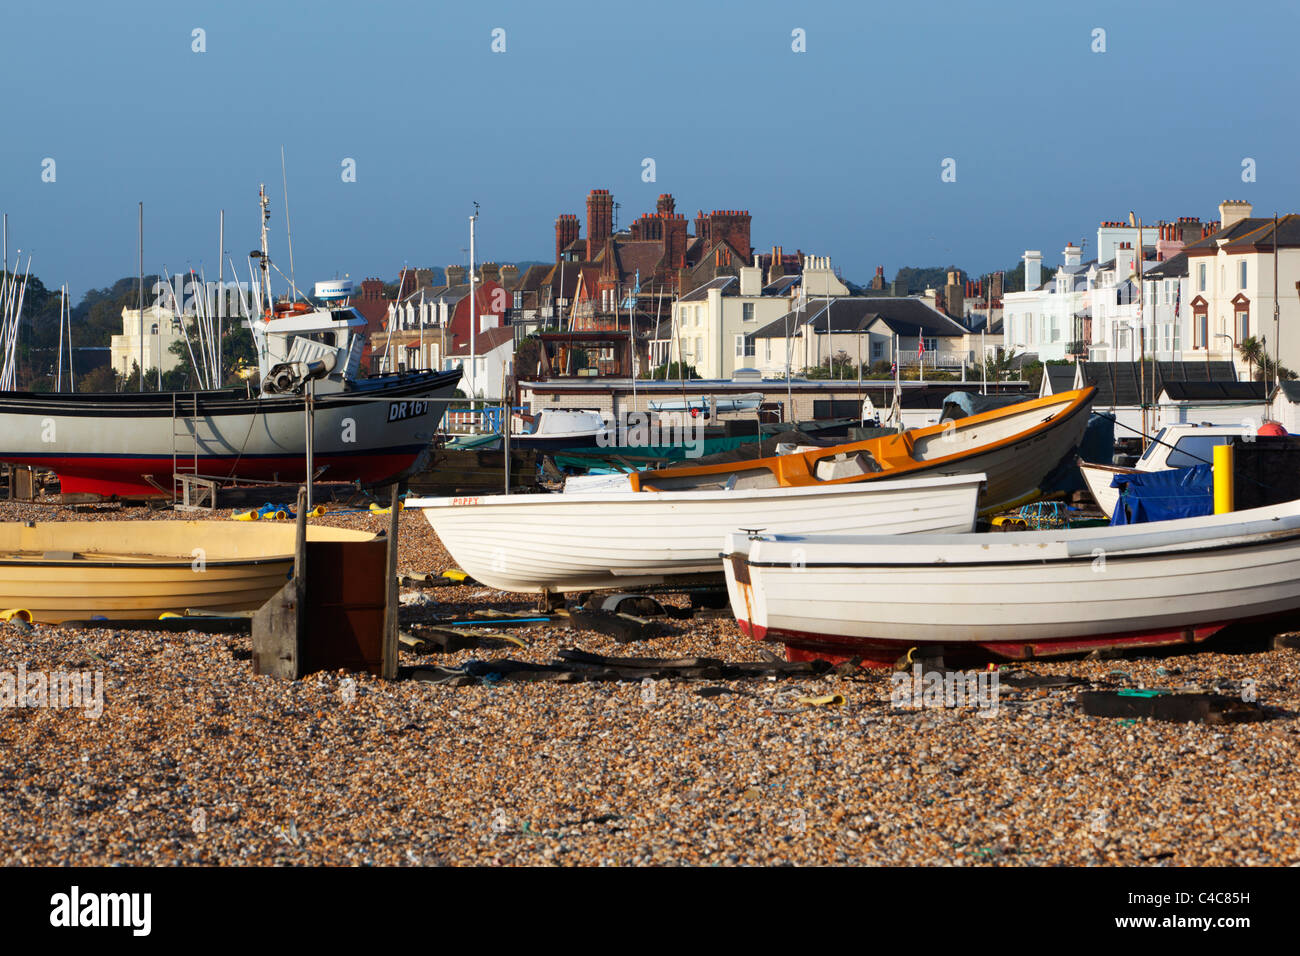 Fishing boats on Deal beach - Stock Image